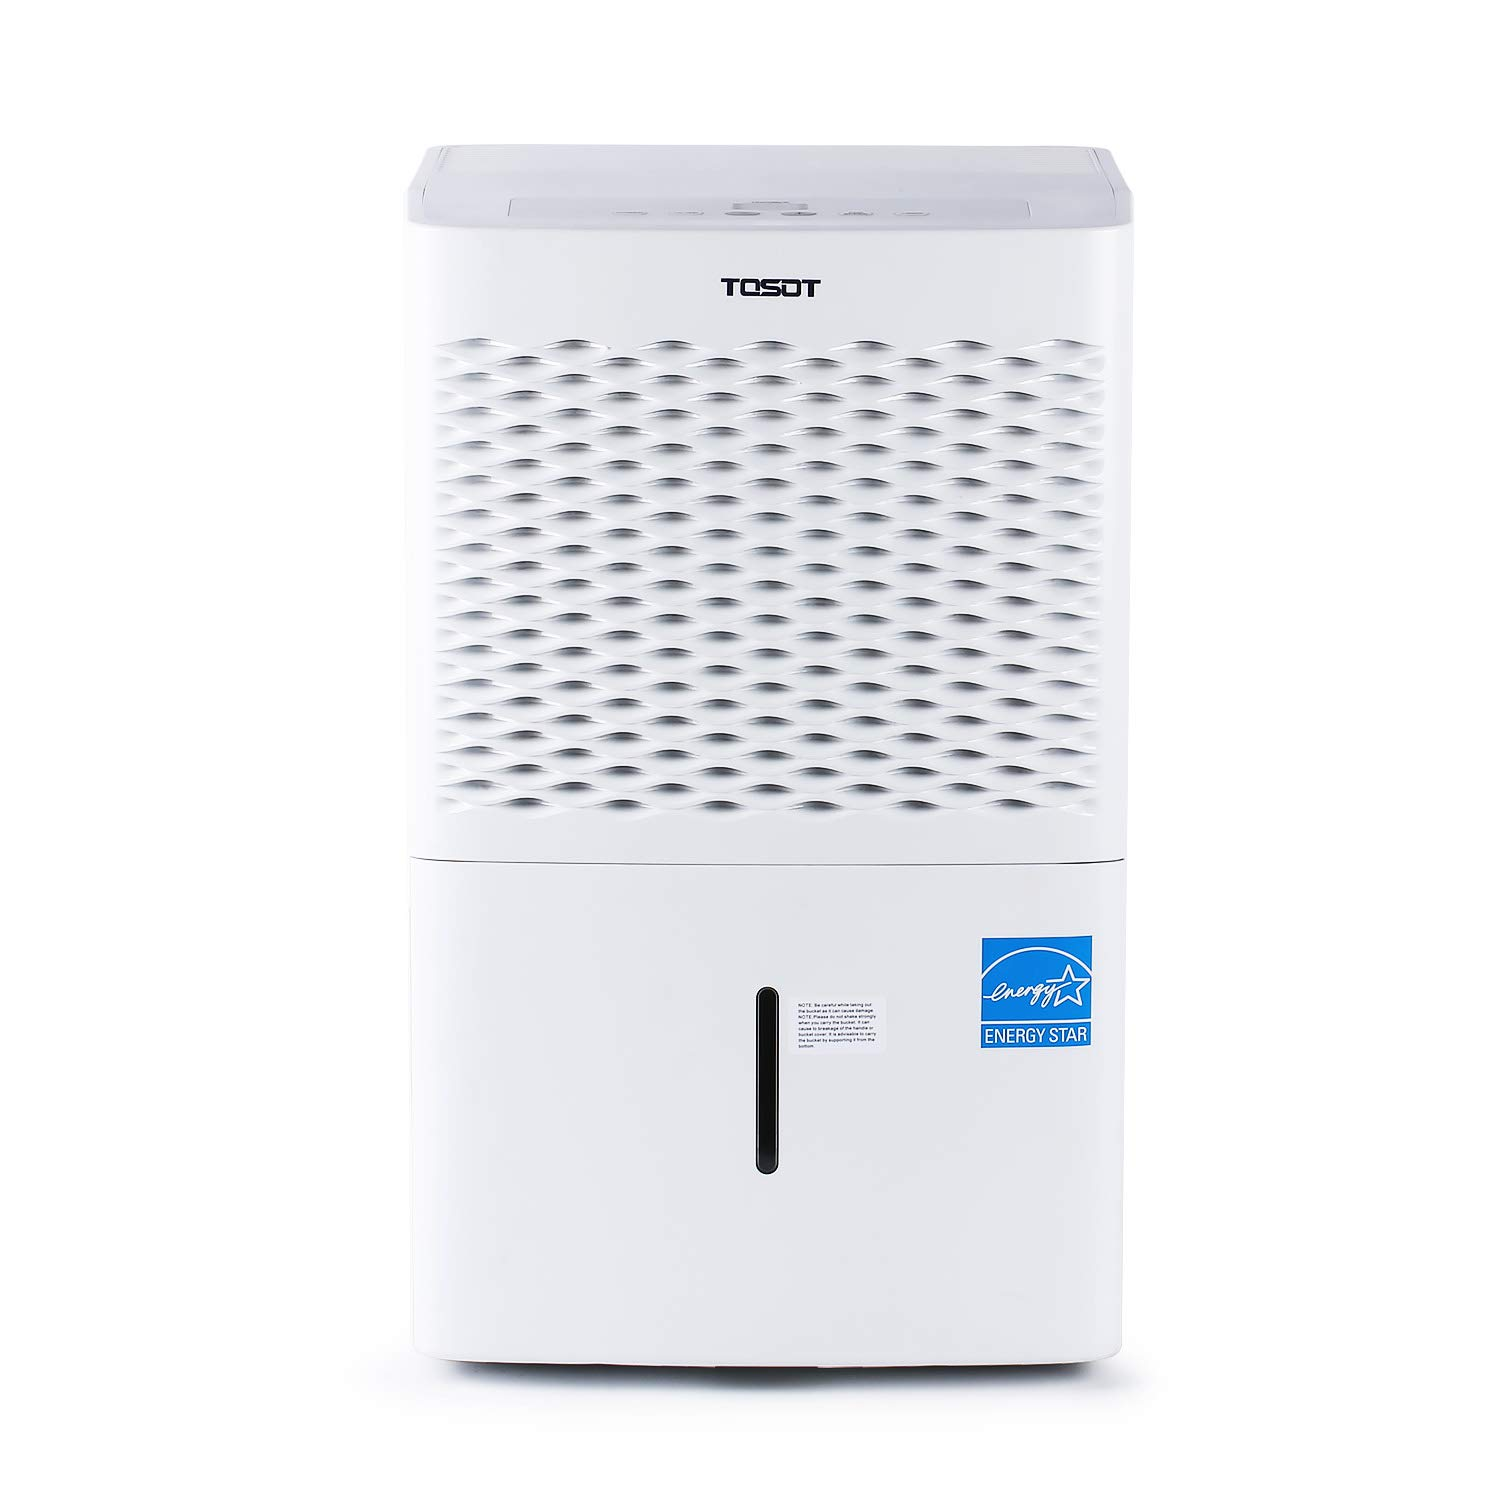 TOSOT Dehumidifier Midsize Rooms Square